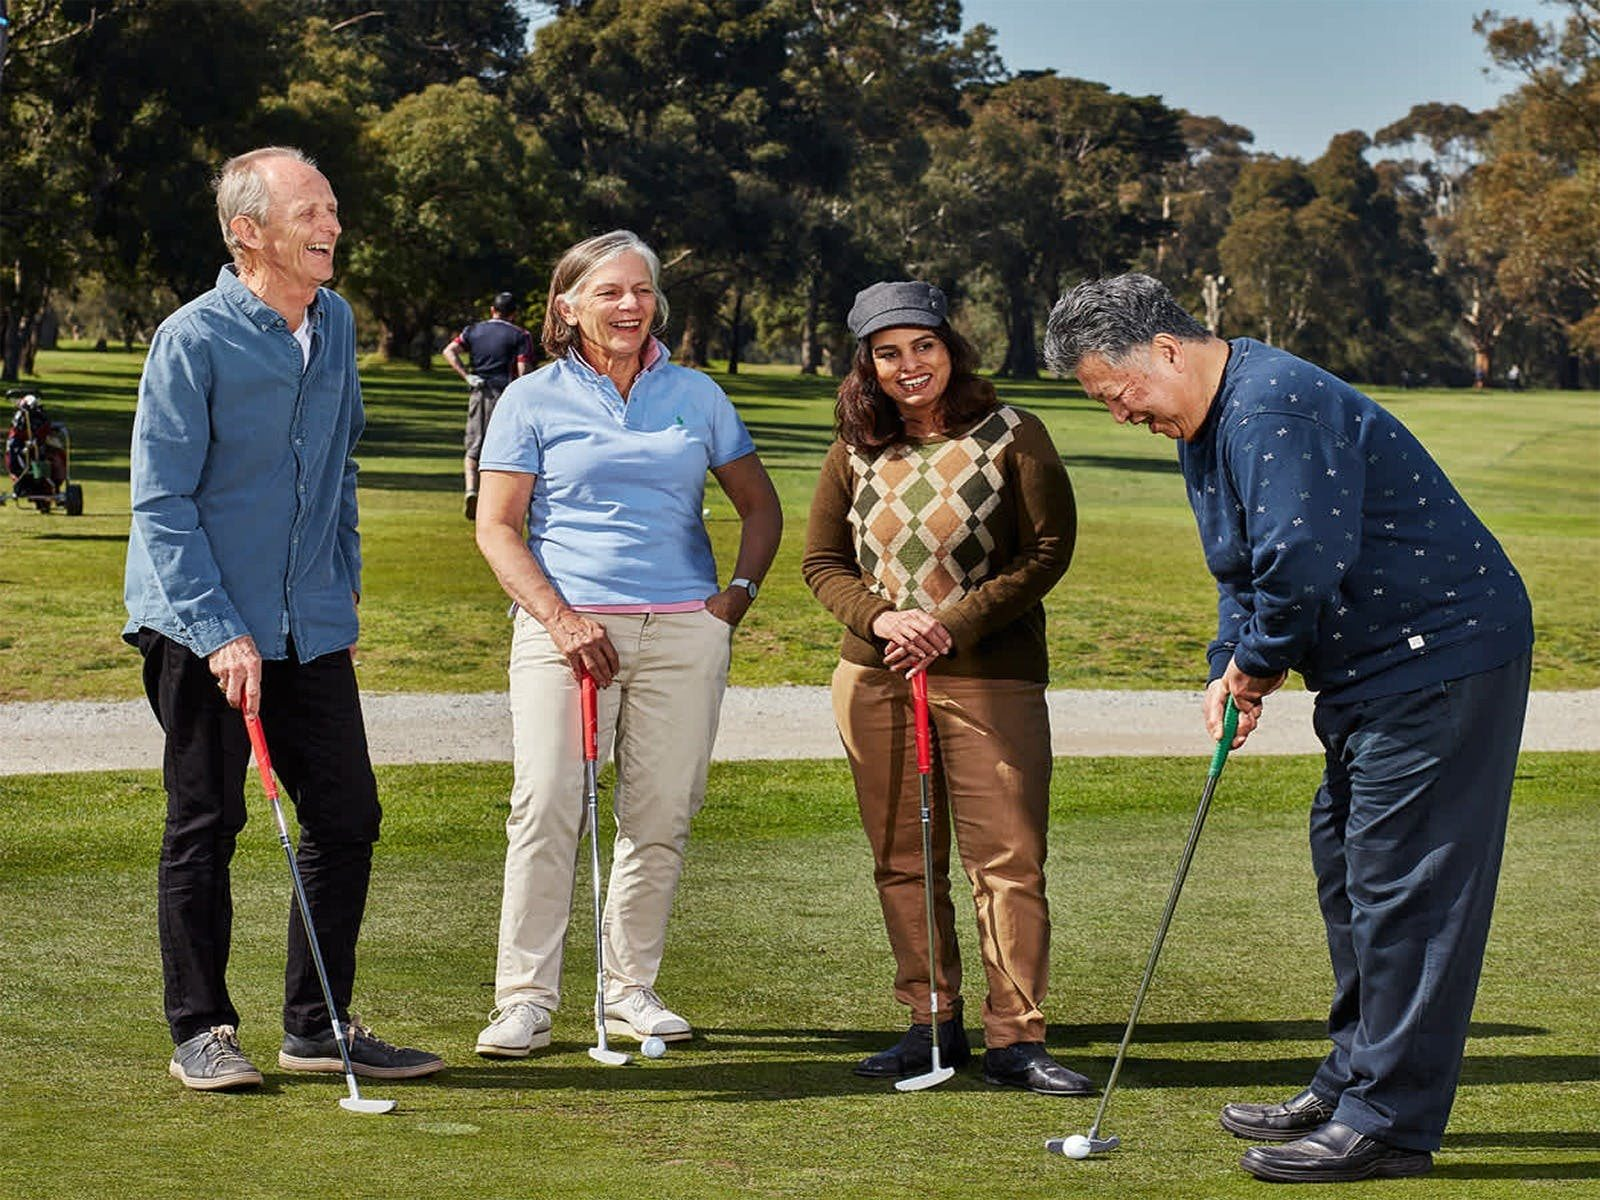 4 people on a golf green with golf clubs